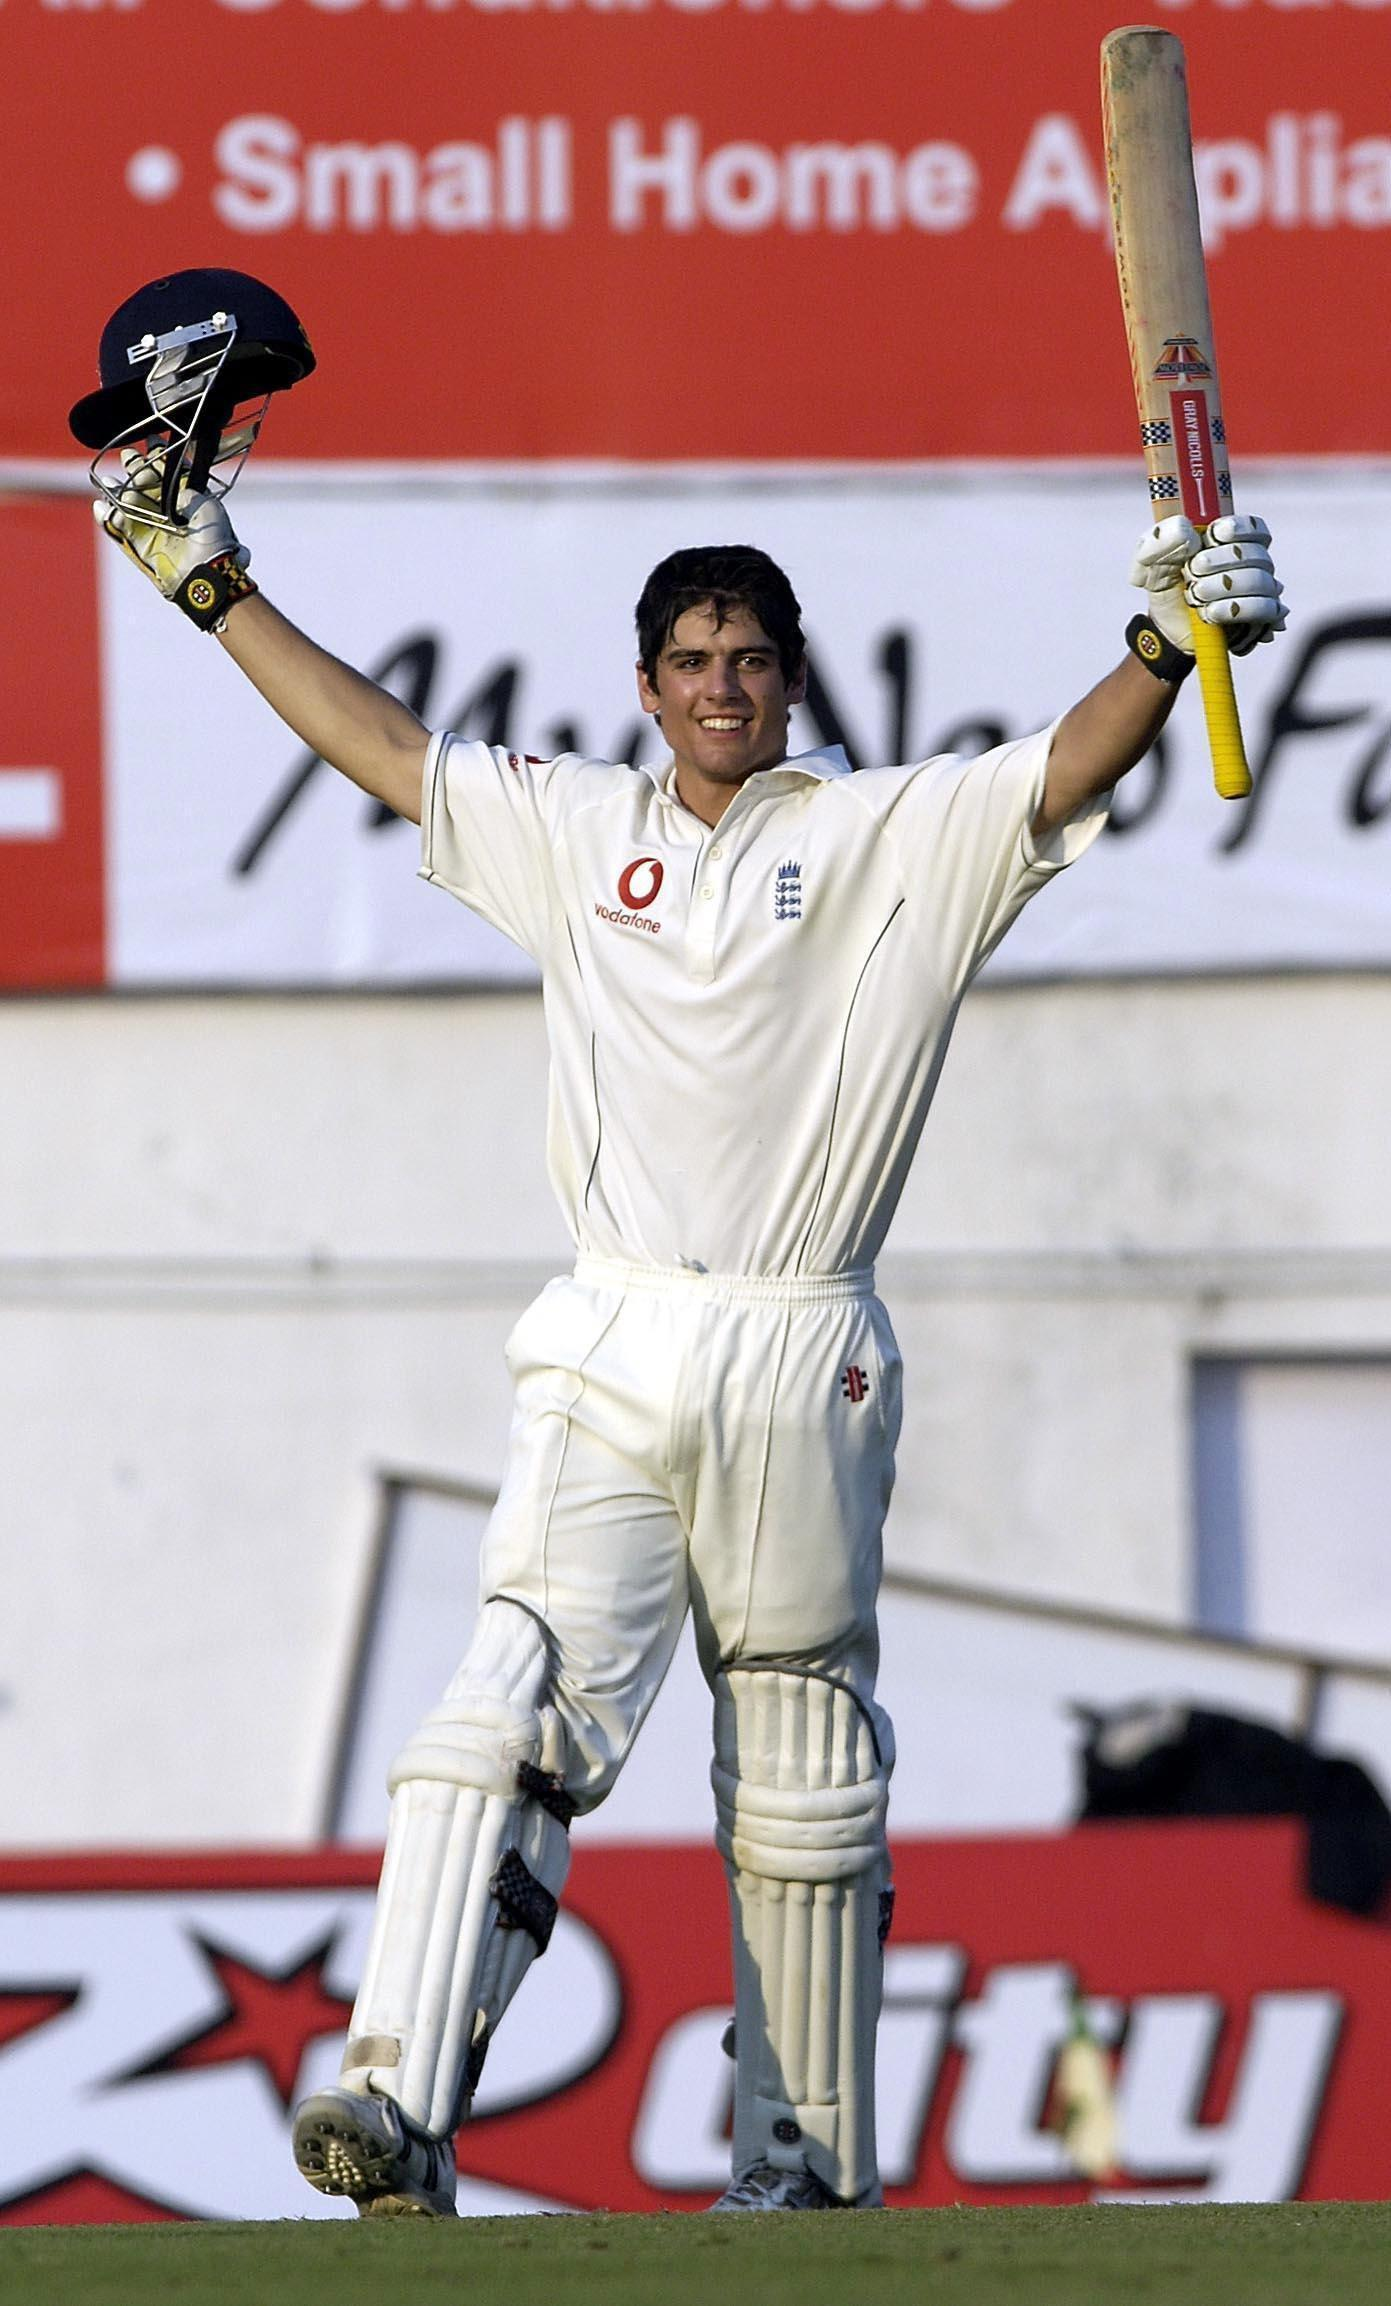 Alastair Cook will hang up his bat after the Fifth Test against India this week